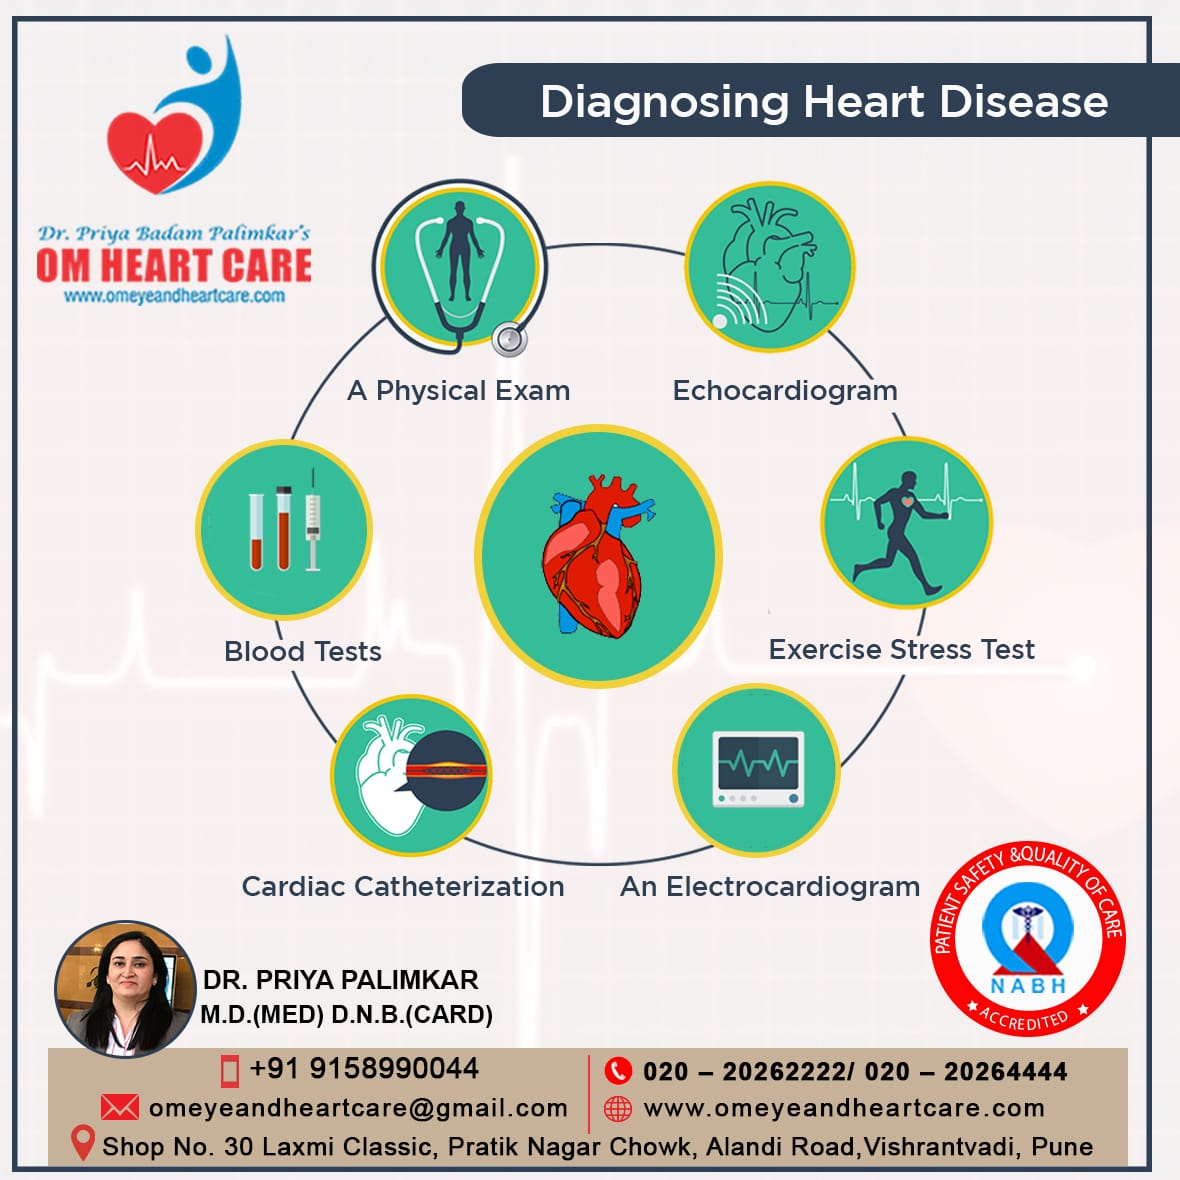 Diagnosing Heart Disease-  A Physical Exam  Echocardiogram Blood Tests Exercise Stress Test An Electrocardiogram Cardio Catheterization.  For More Info Visit  #CardicRehabilitationCentre #Angiography #Angioplasty #Cardiologist #Awareness #HeartFacts